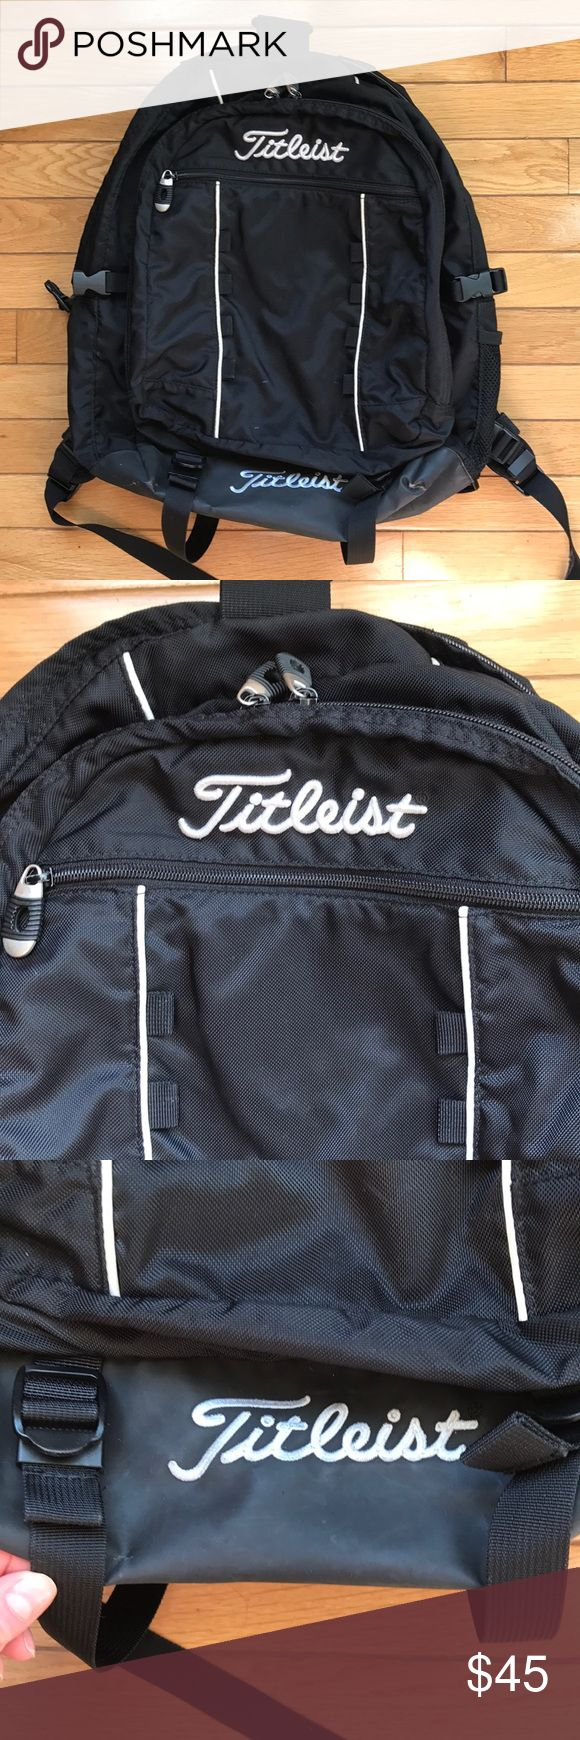 """TITLEIST GOLF BACKPACK / BAG w/ COMPARTMENTS Titelist Golf Backpack / Bag. Black with white script. About 19"""" H, 17"""" L, and 9"""" wide. One front external pocket, one side water bottle compartment, one mid large pocket with multiple compartments (see image), and main compartment. Padded back area for comfort. Bottom of bag has scuffs that are a brownish white color - see image. Otherwise the bag is in great condition! Adjustable straps. Titleist Bags Backpacks"""